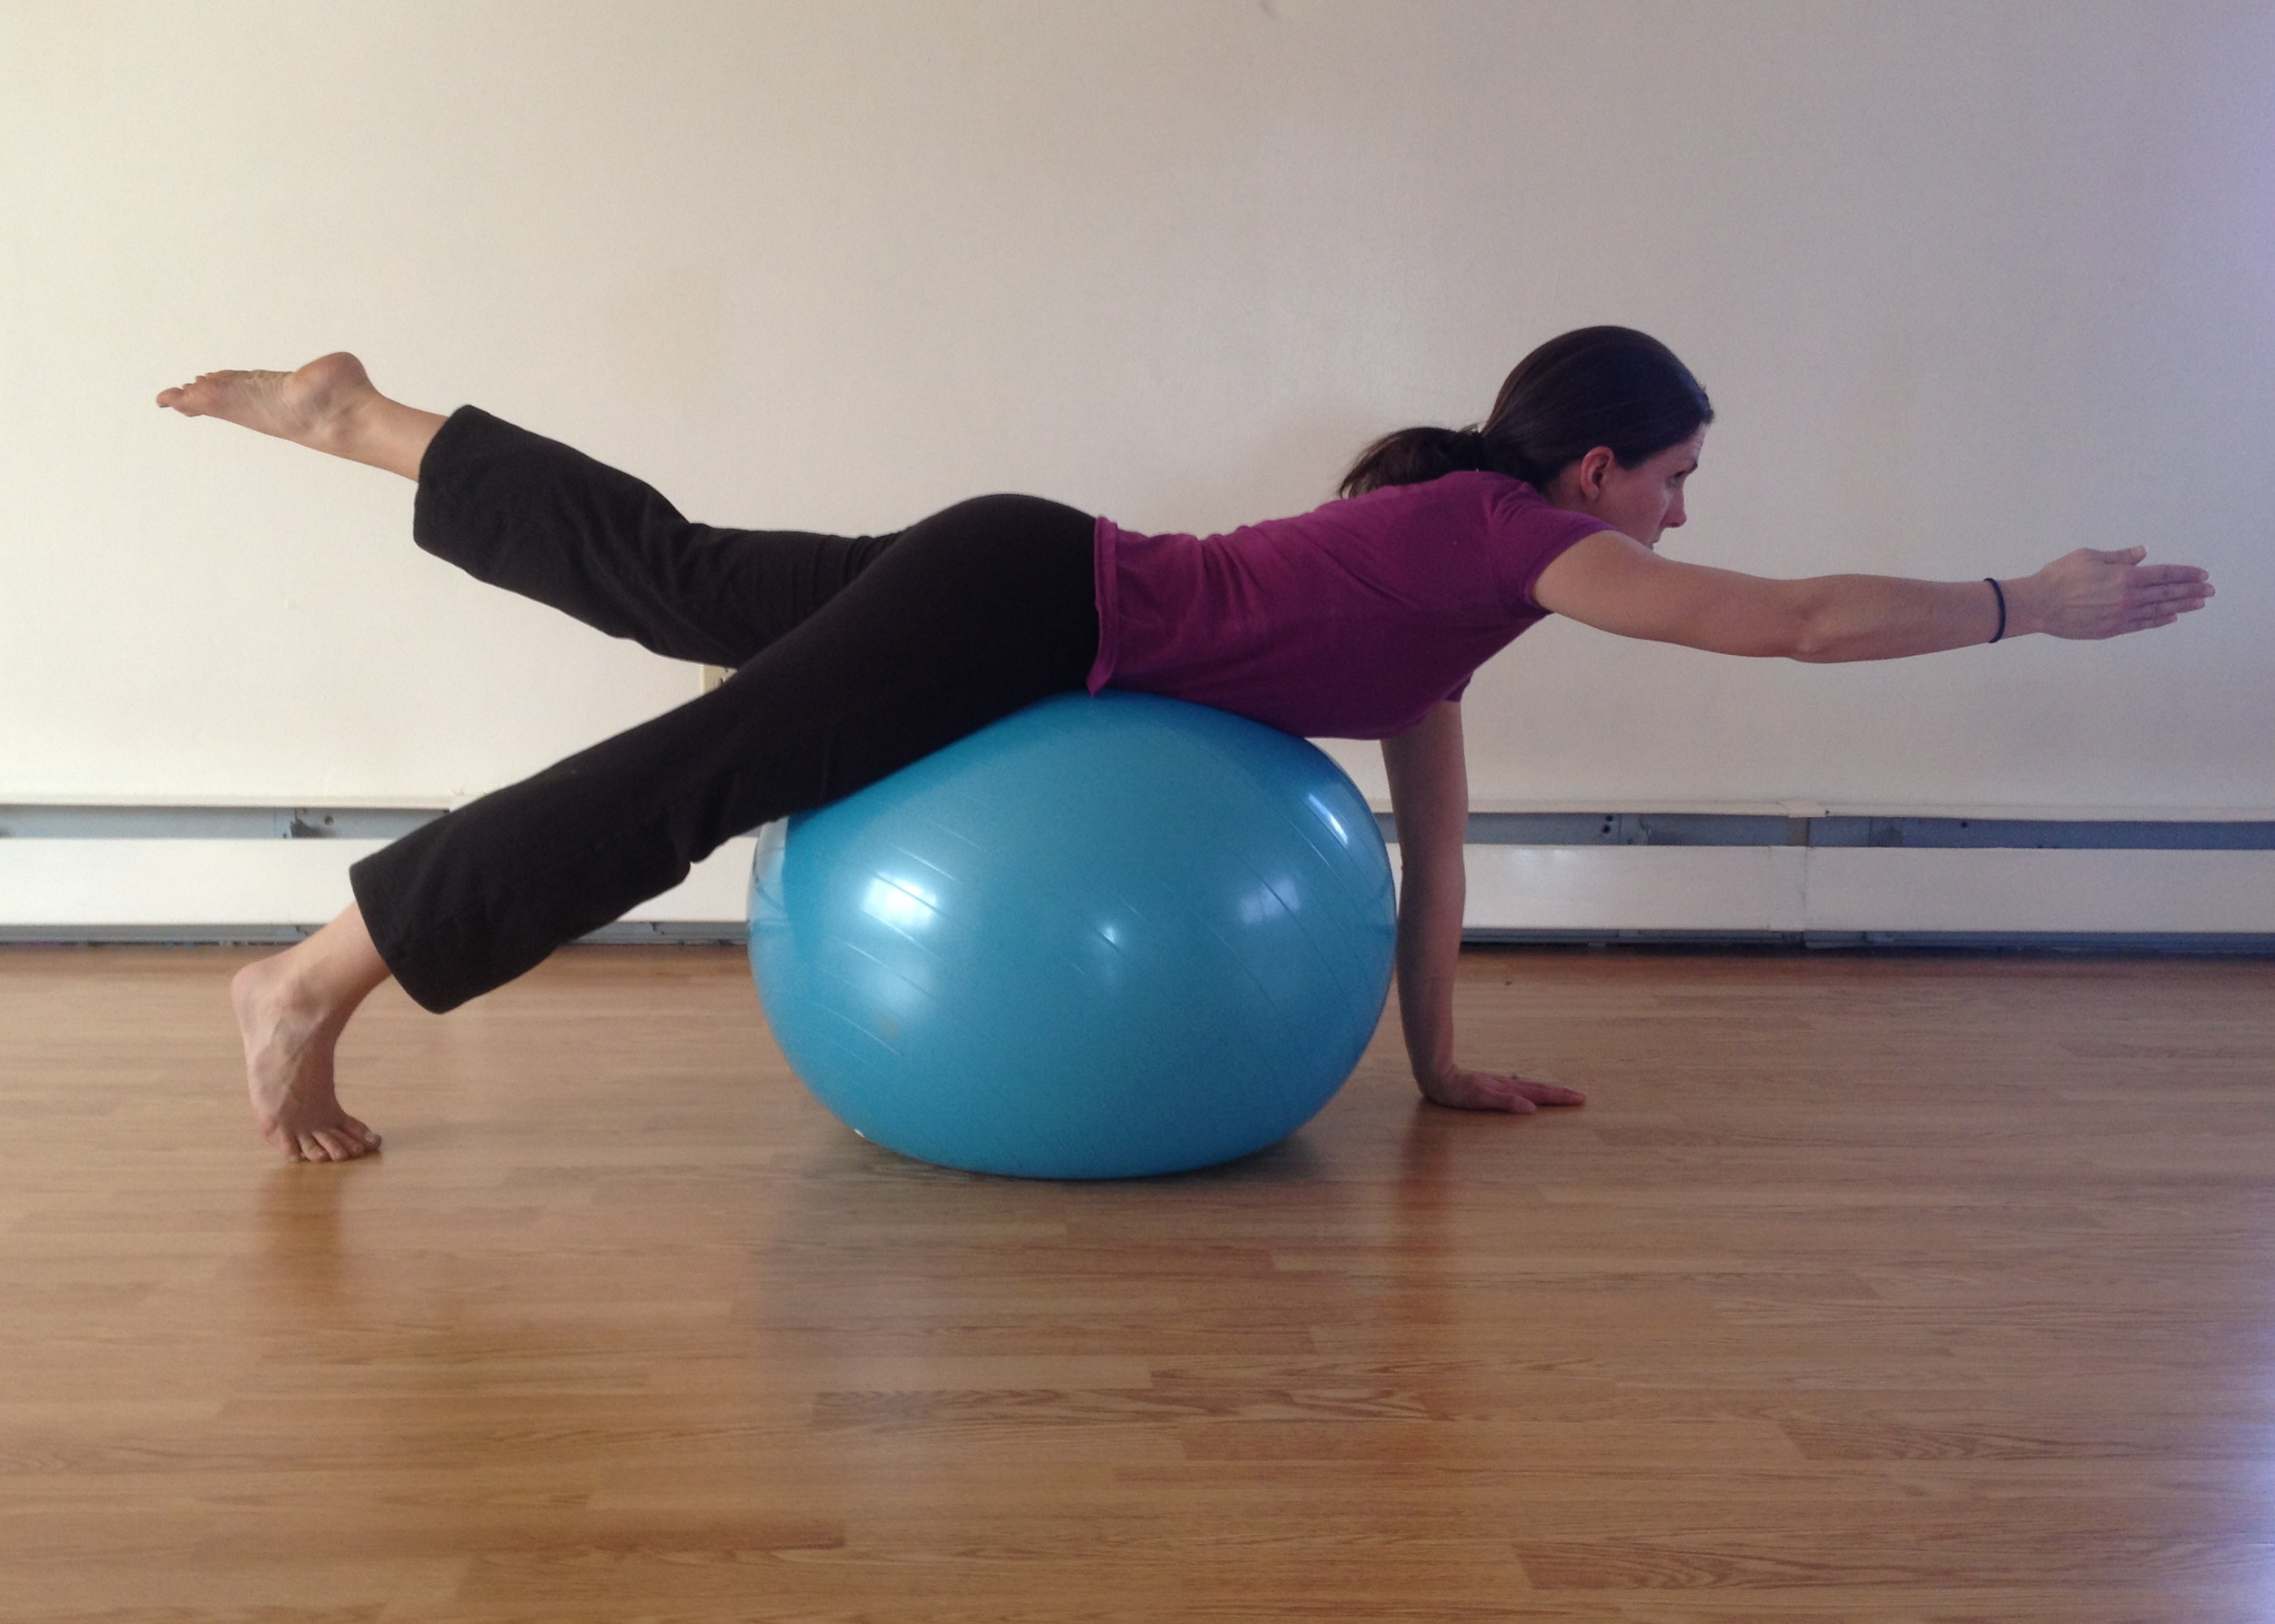 Great for core strength!